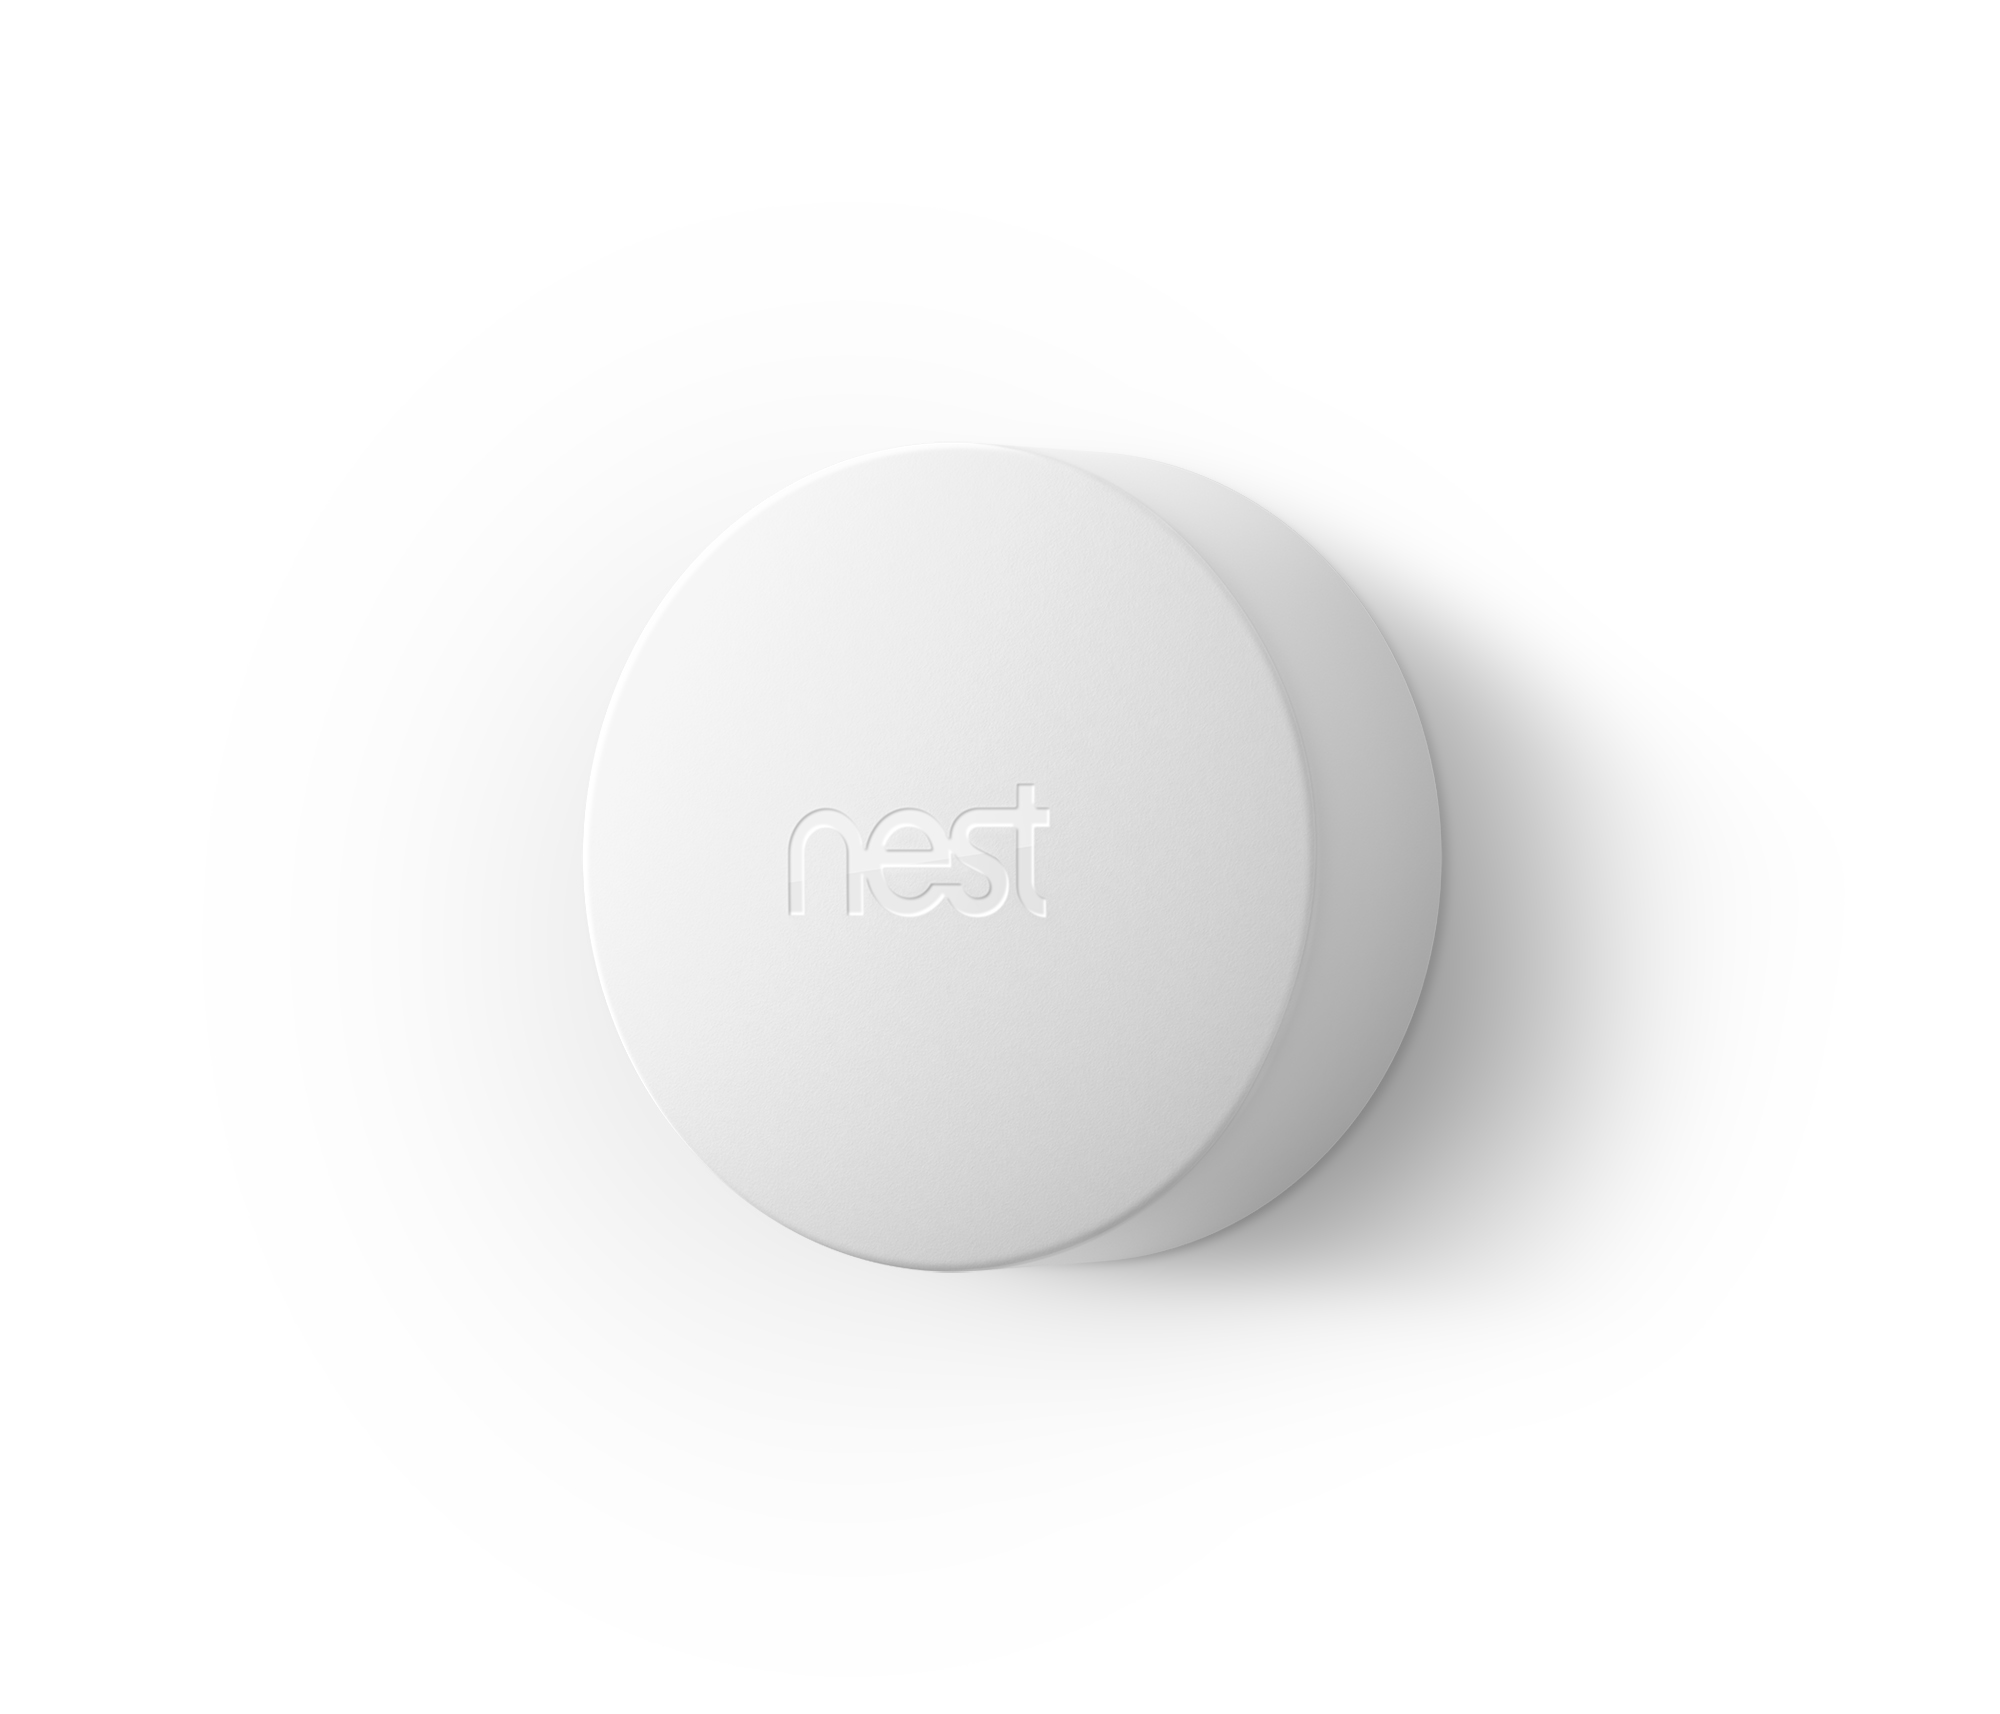 Learn About The Nest Temperature Sensor Before You Buy Ac Safety Switch Wiring With Electric Fan Relay Weve Worked Hard To Design A Thats Beautiful Easy Use And Helps Keep Your Family Comfortable